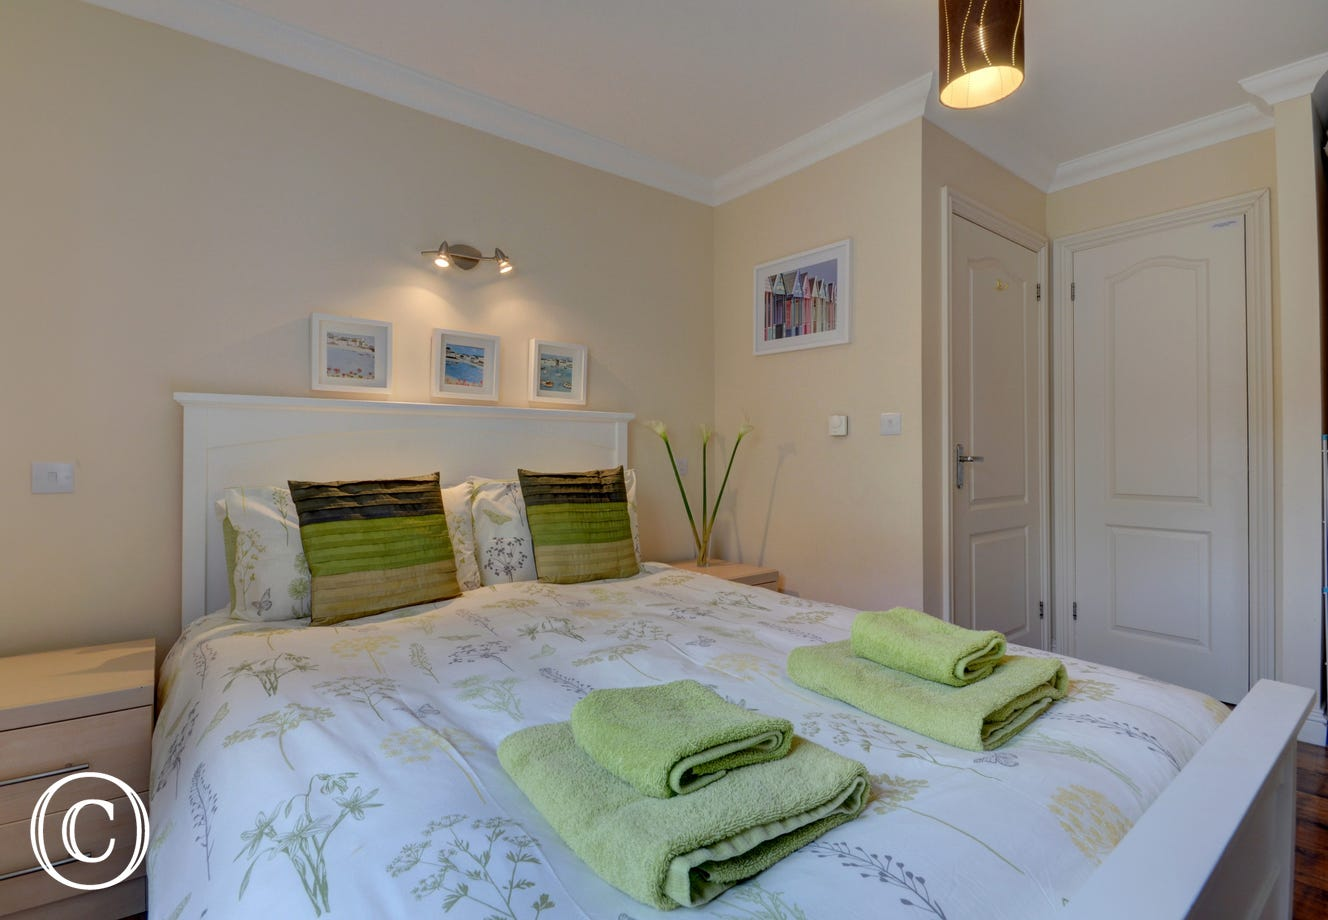 The double bedroom has been recently upgraded with high quality king size bed